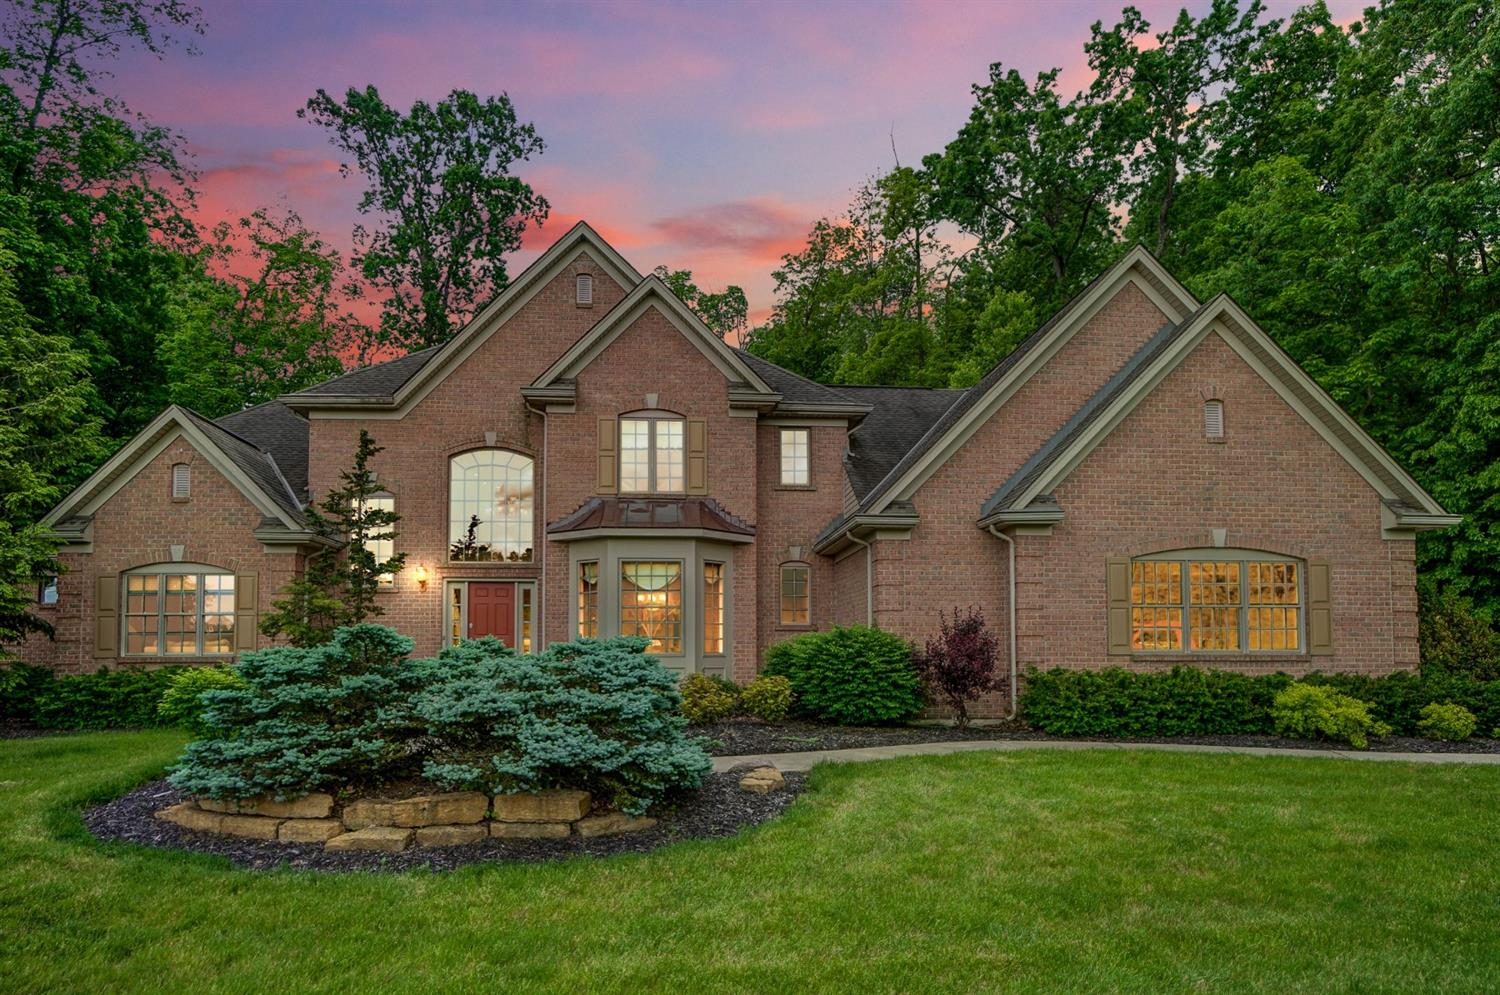 4963 Morgans Run Court, Harlan Twp, OH 45152